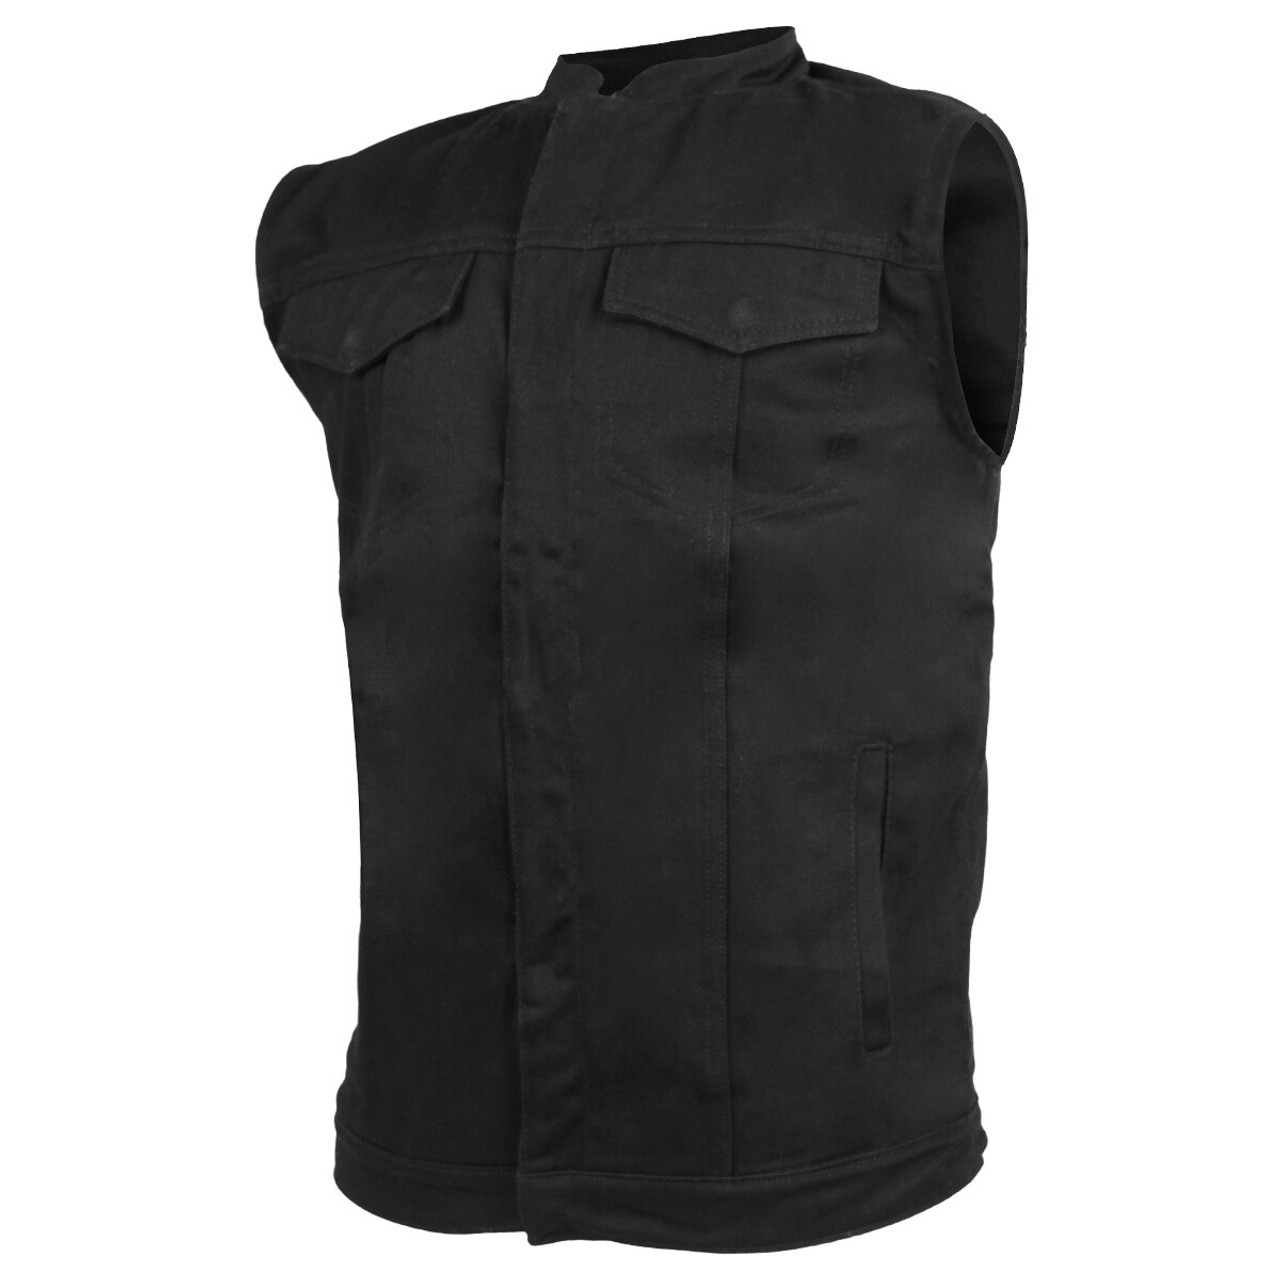 Motorcycle Leather vest for Men Snap and Zip Front Club Style Vest LV-55 L